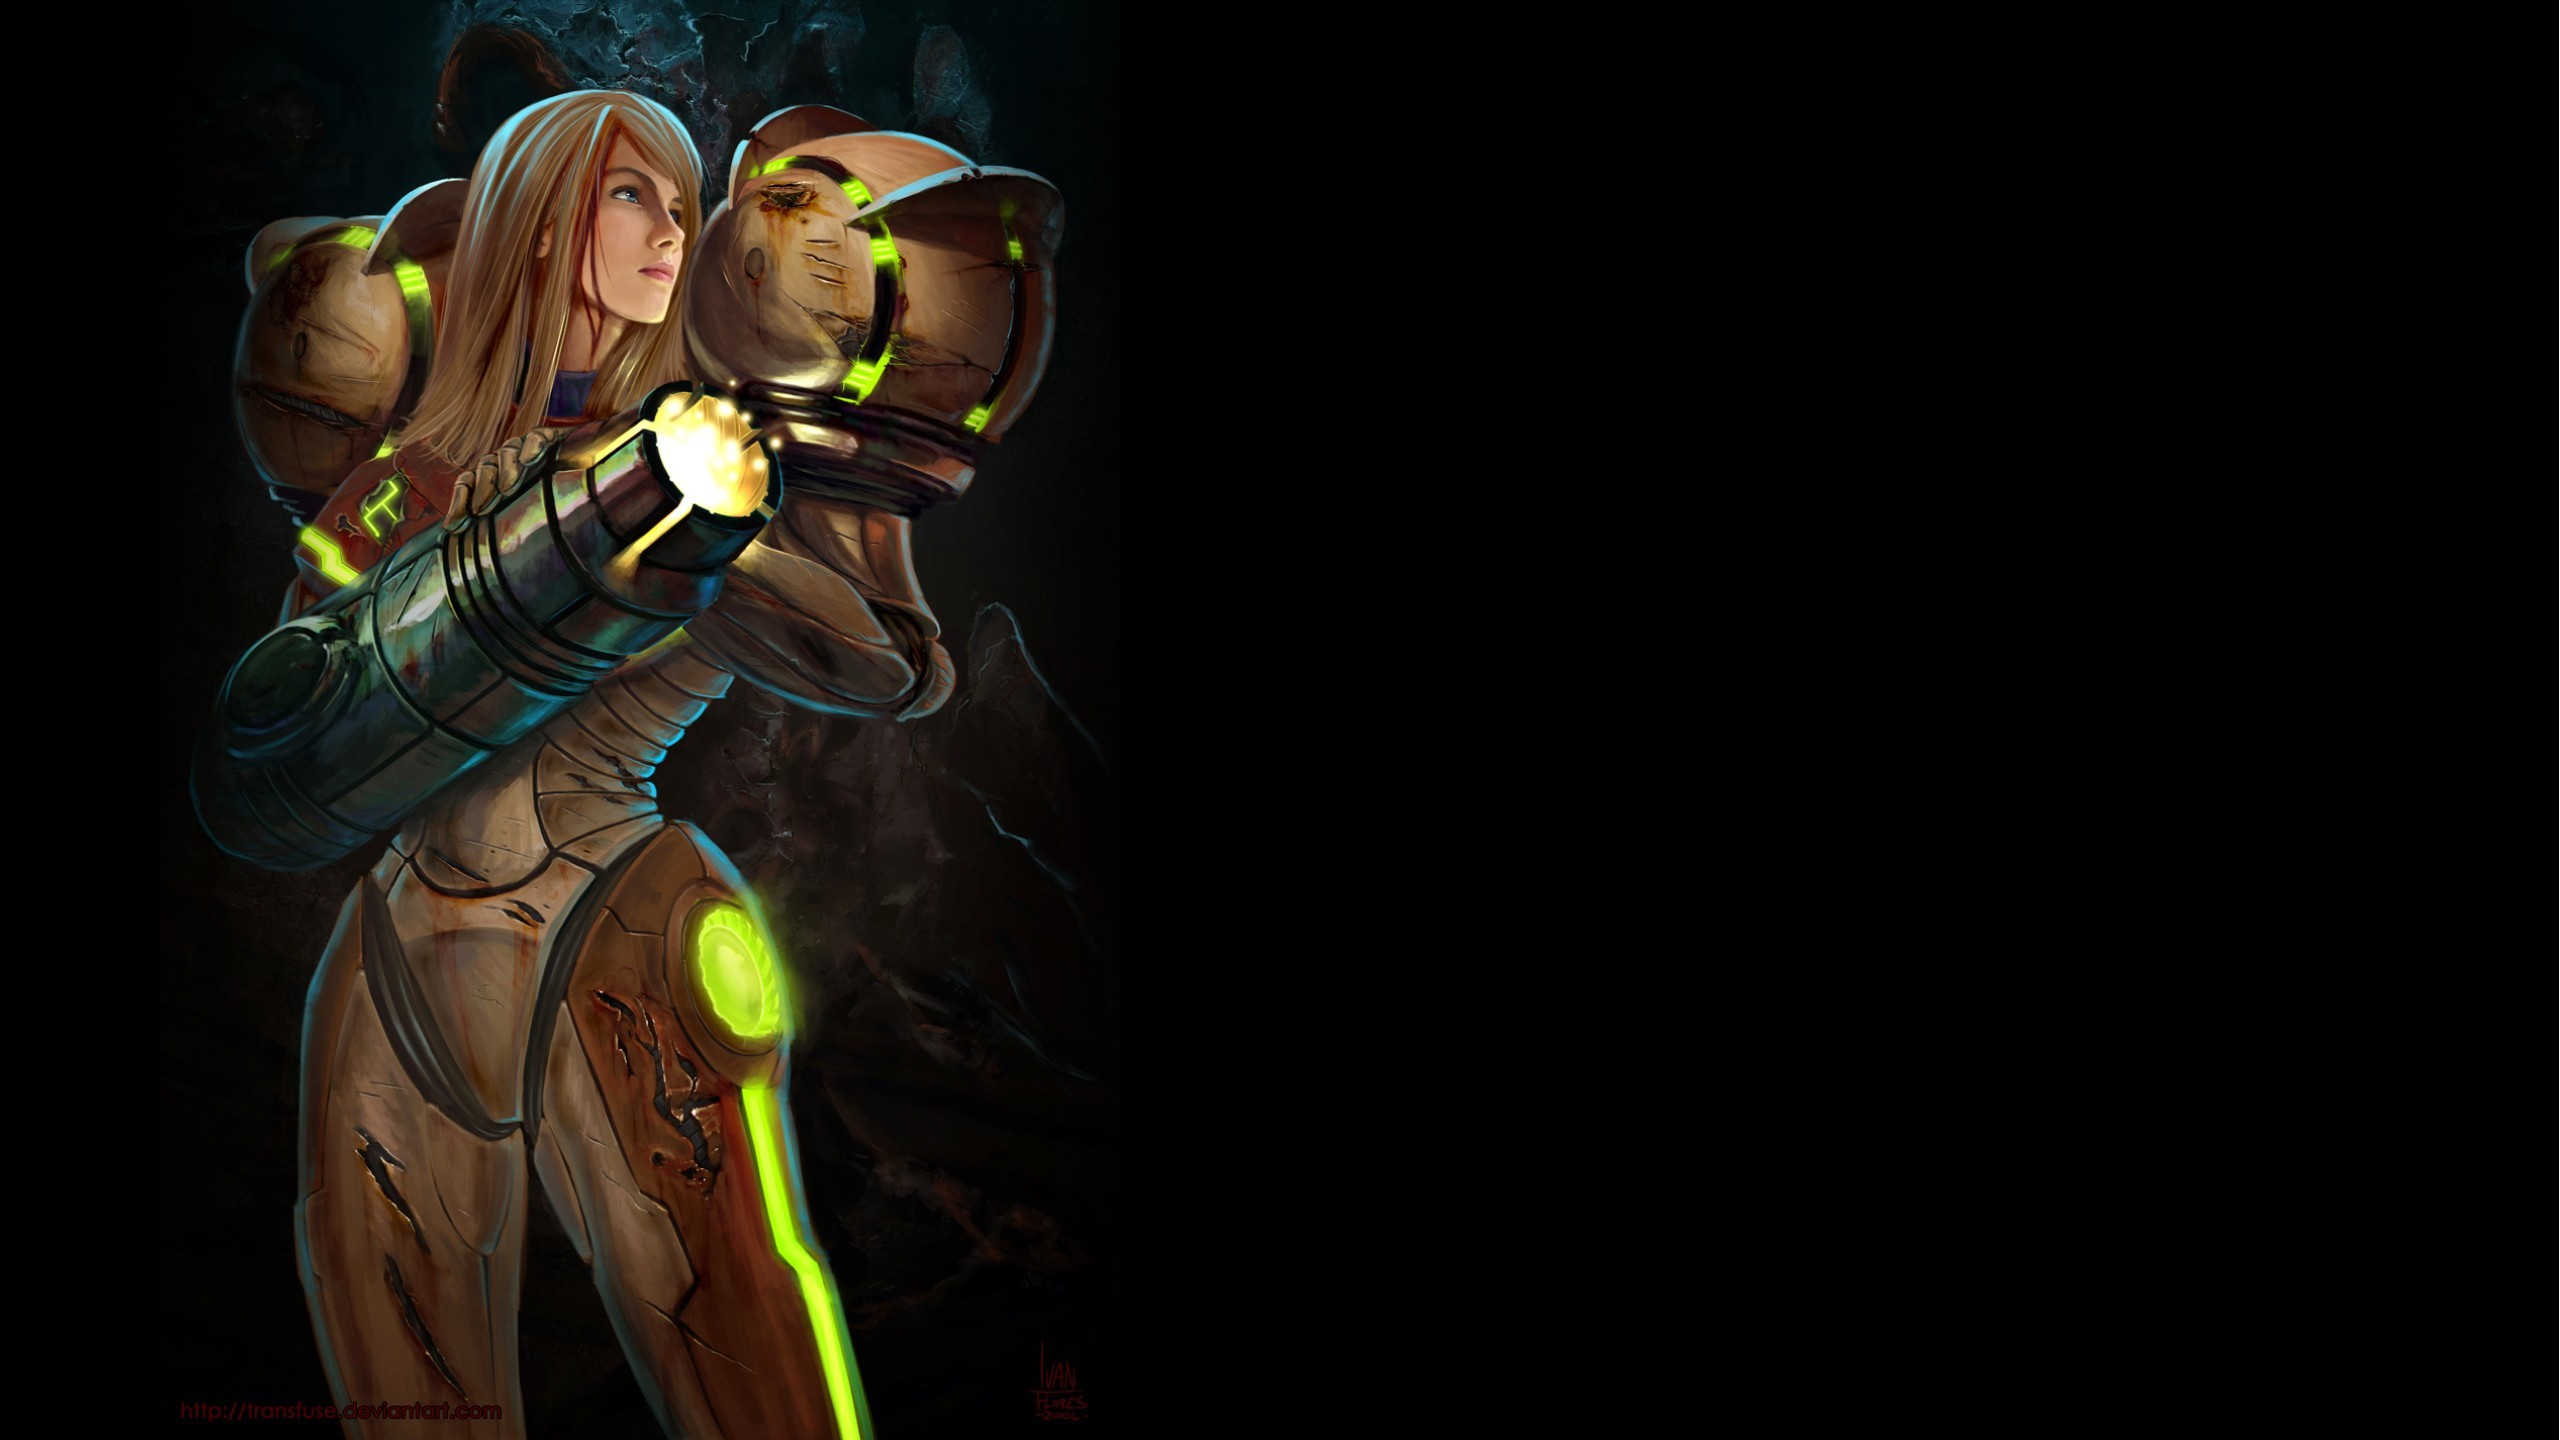 artwork fan art metroid HD Wallpaper